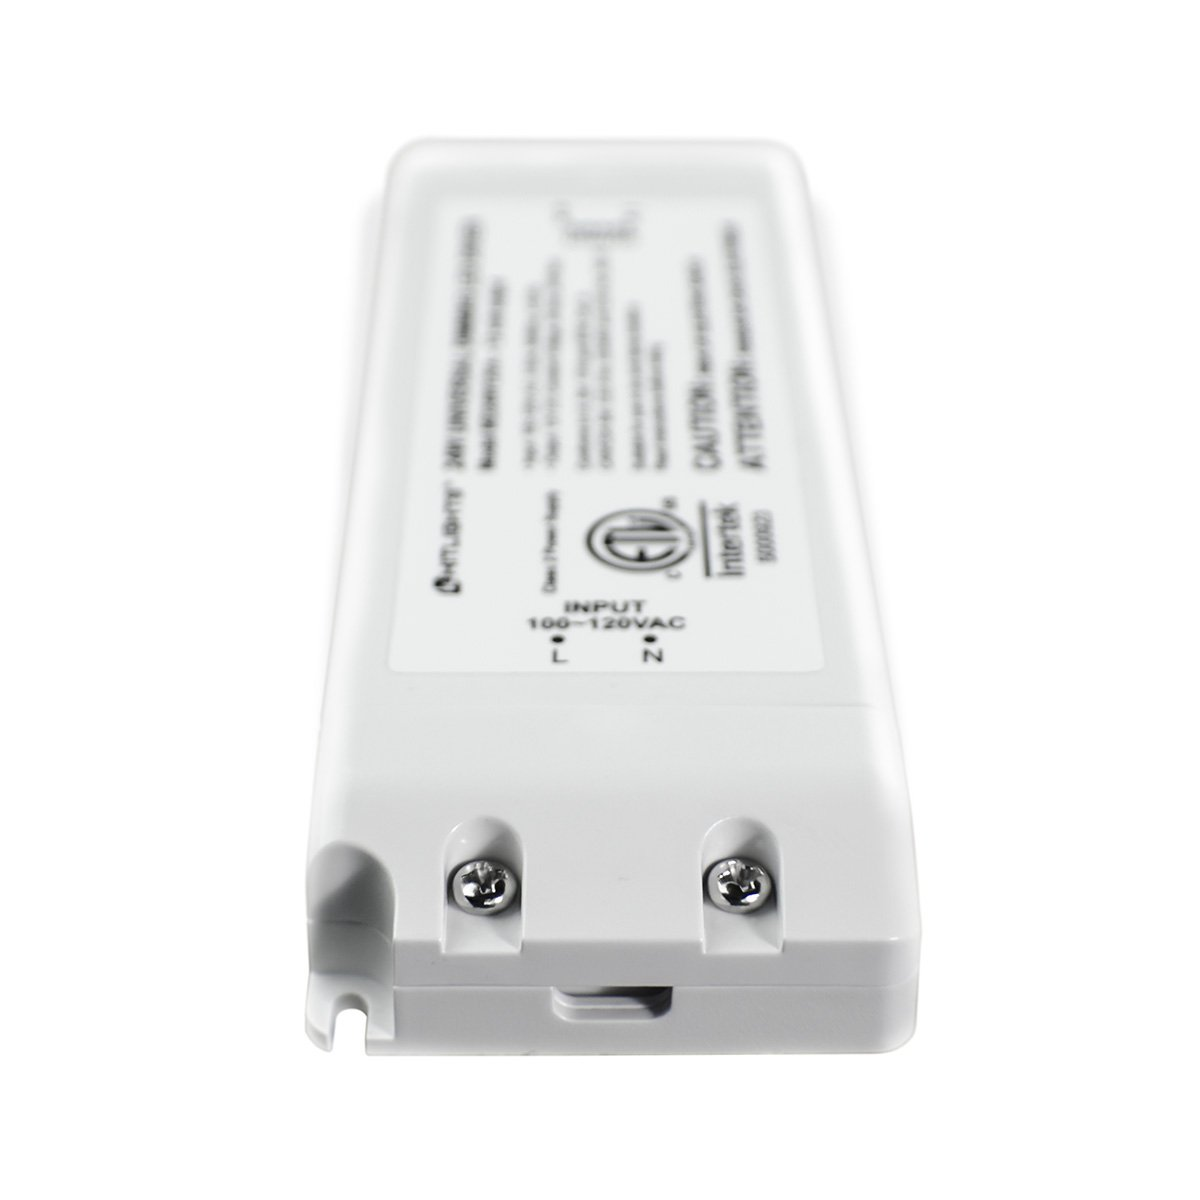 HitLights 300 Watt Dimmable Driver, Magnetic LED Driver - 110V AC-24V DC Transformer. Made in The USA. Compatible with Lutron and Leviton for LED Strip Lights, Constant Voltage LED Products